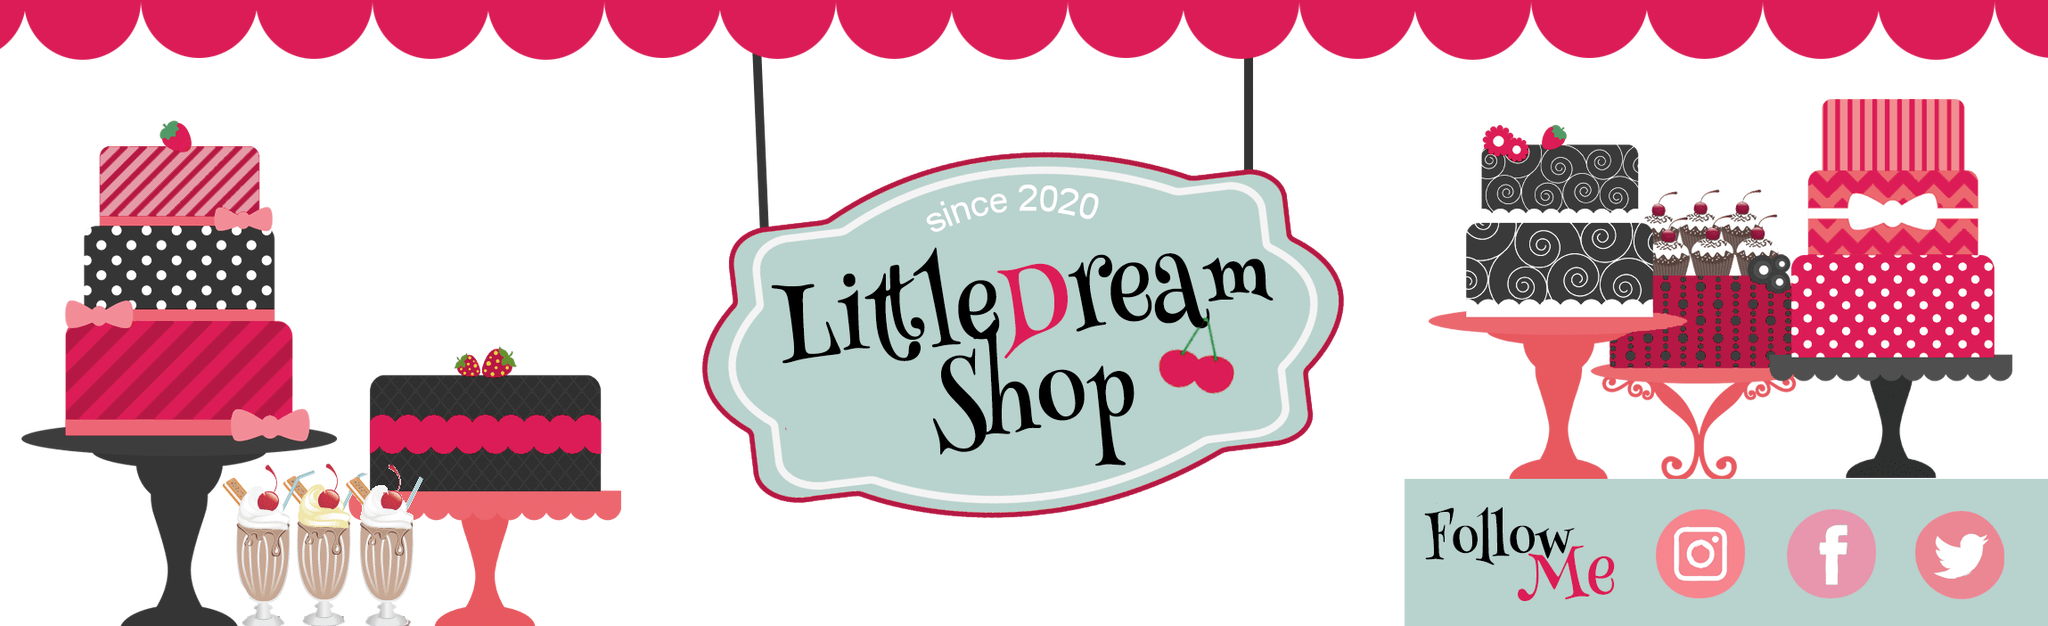 LittleDreamShop